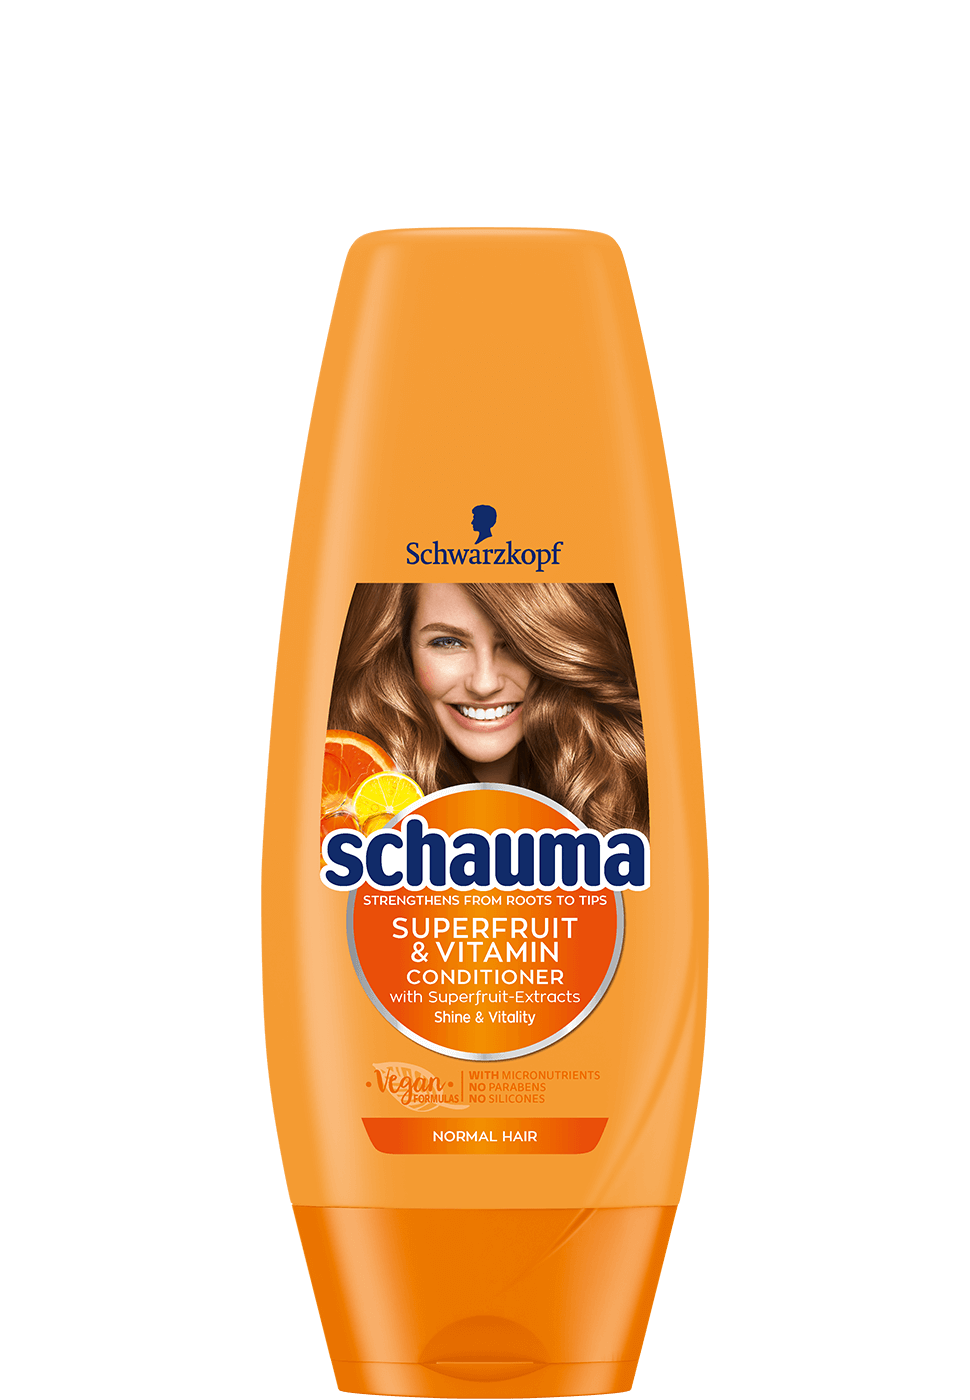 schauma_com_superfruit_vitamin_conditioner_970x1400